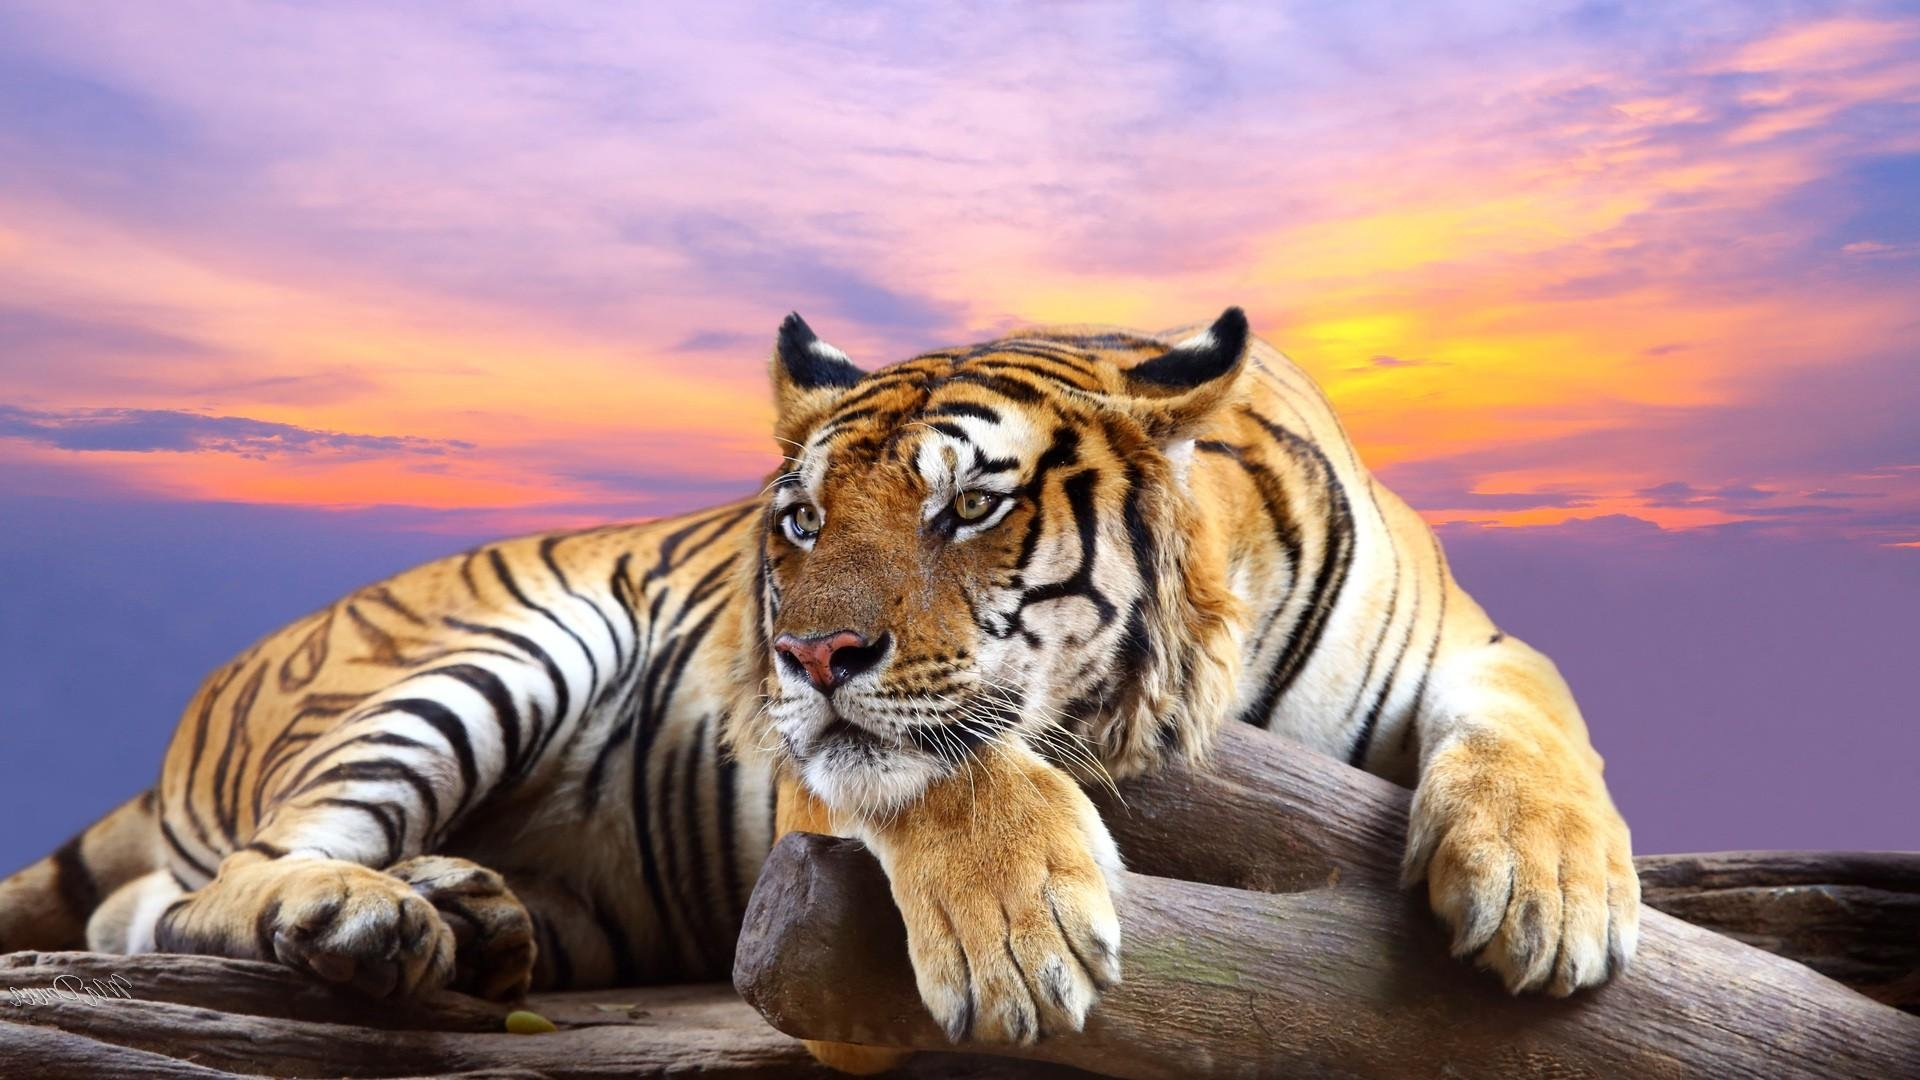 Tiger Art Wallpaper Jpg 960 800: Tiger Resting 14498 HD Wallpaper